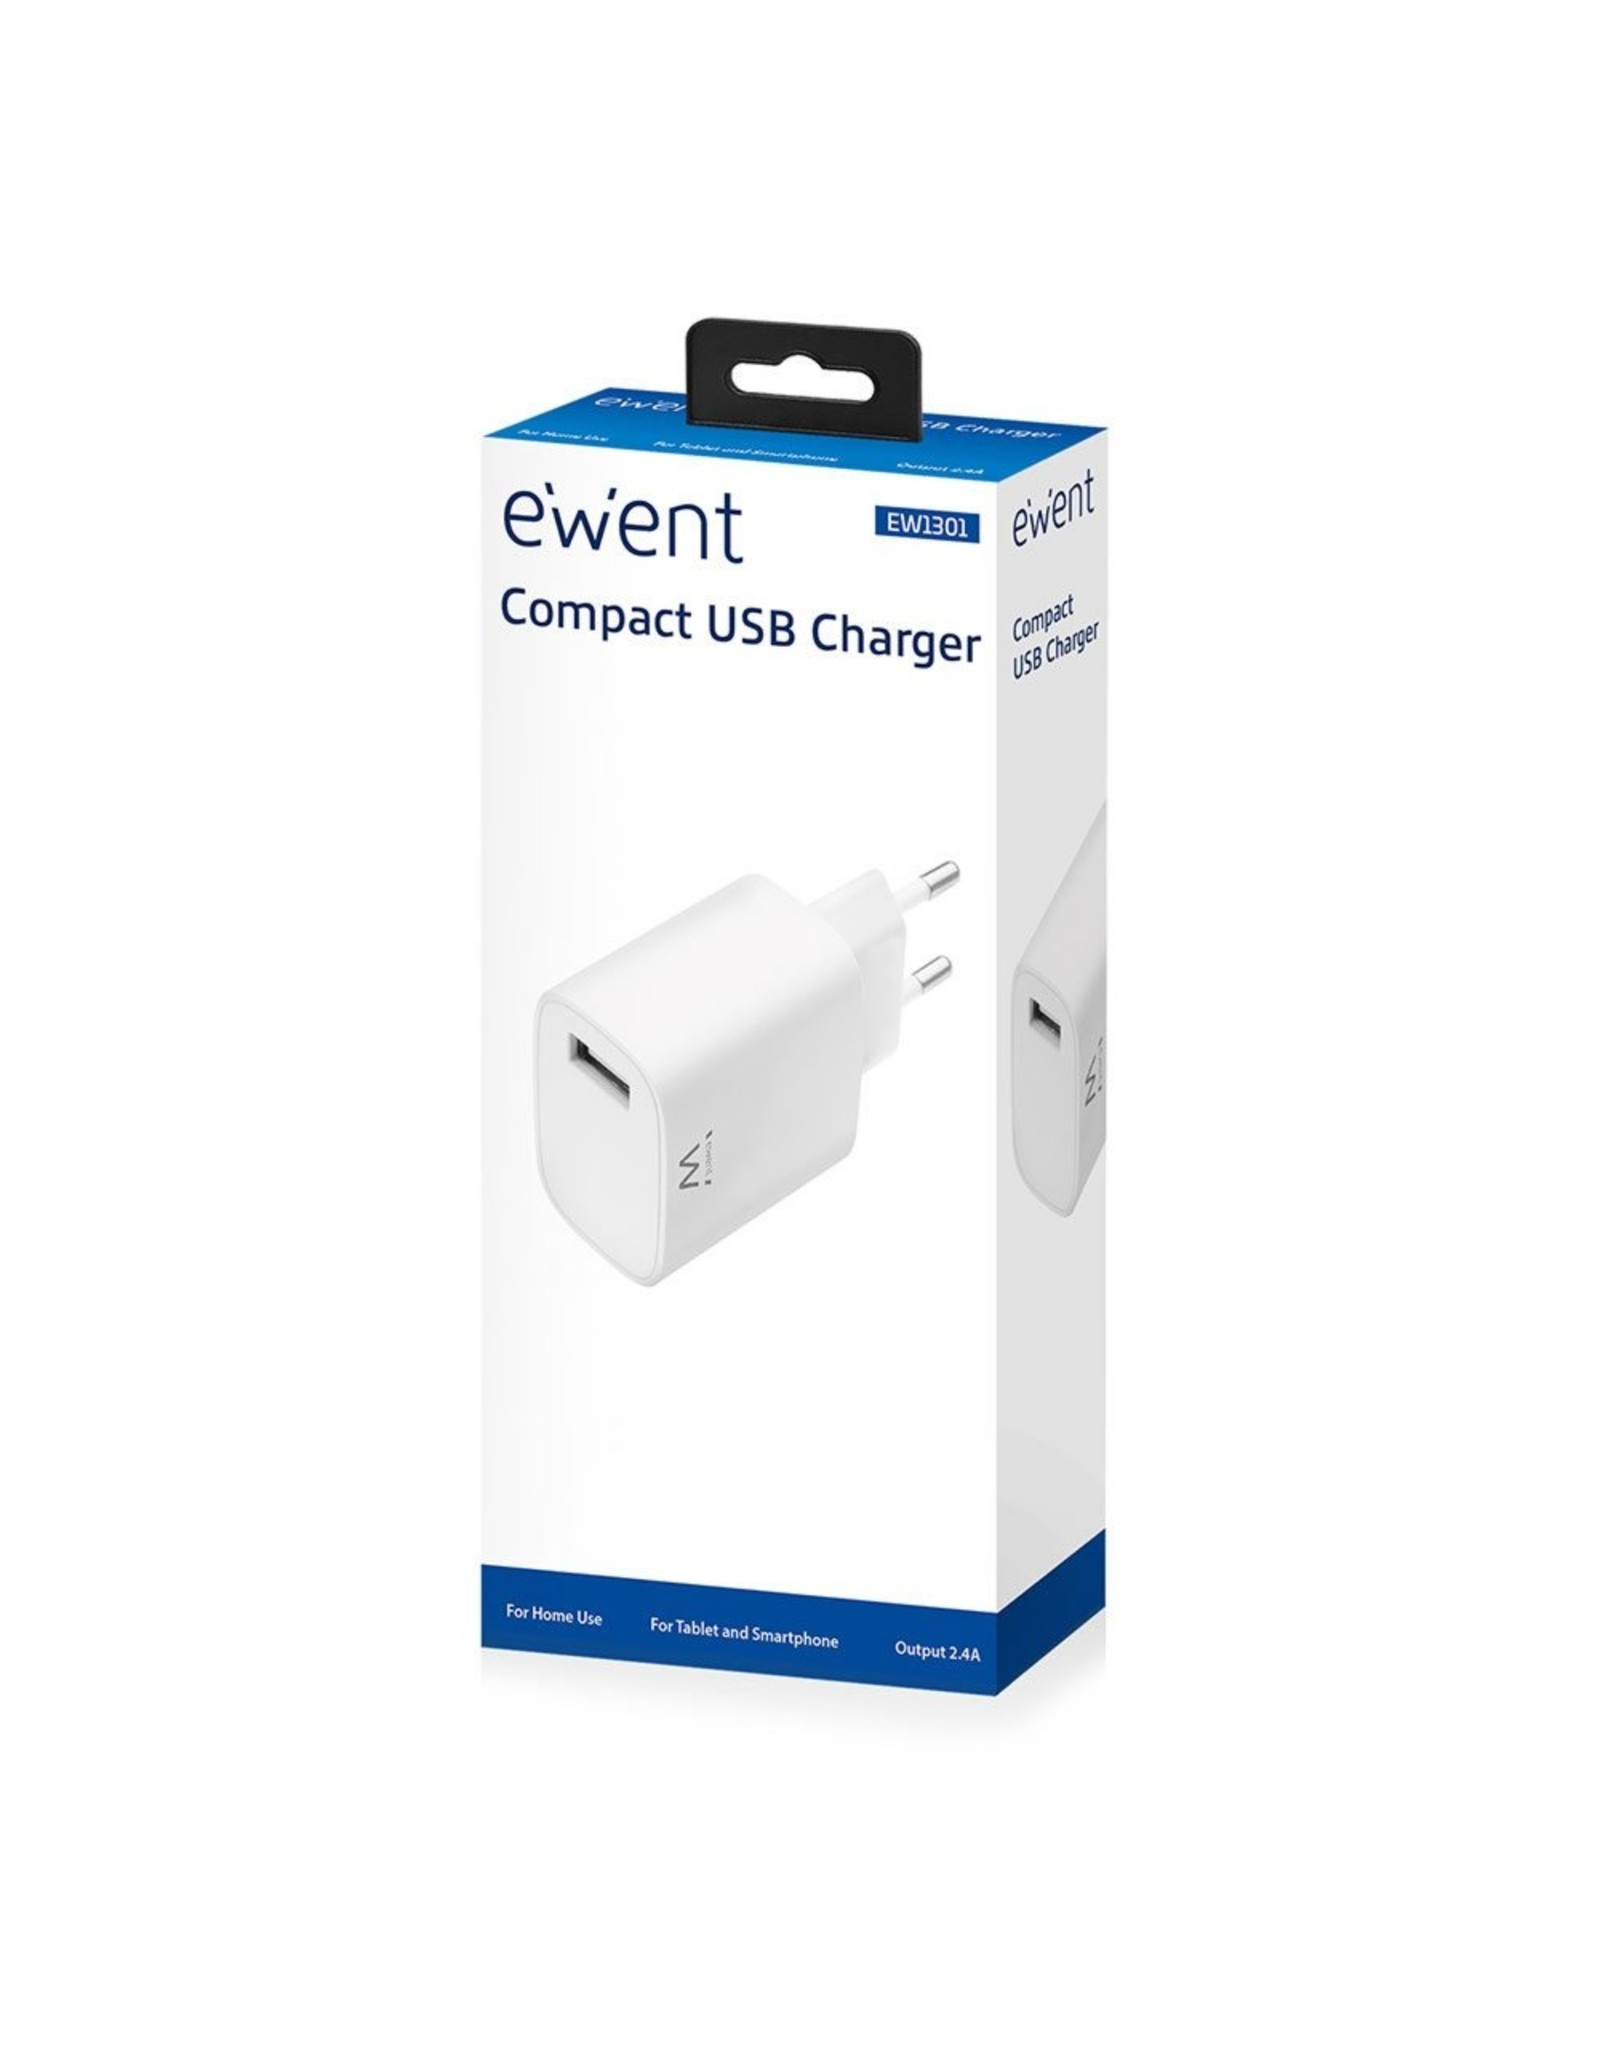 Ewent Compact USB Charger 2.4A